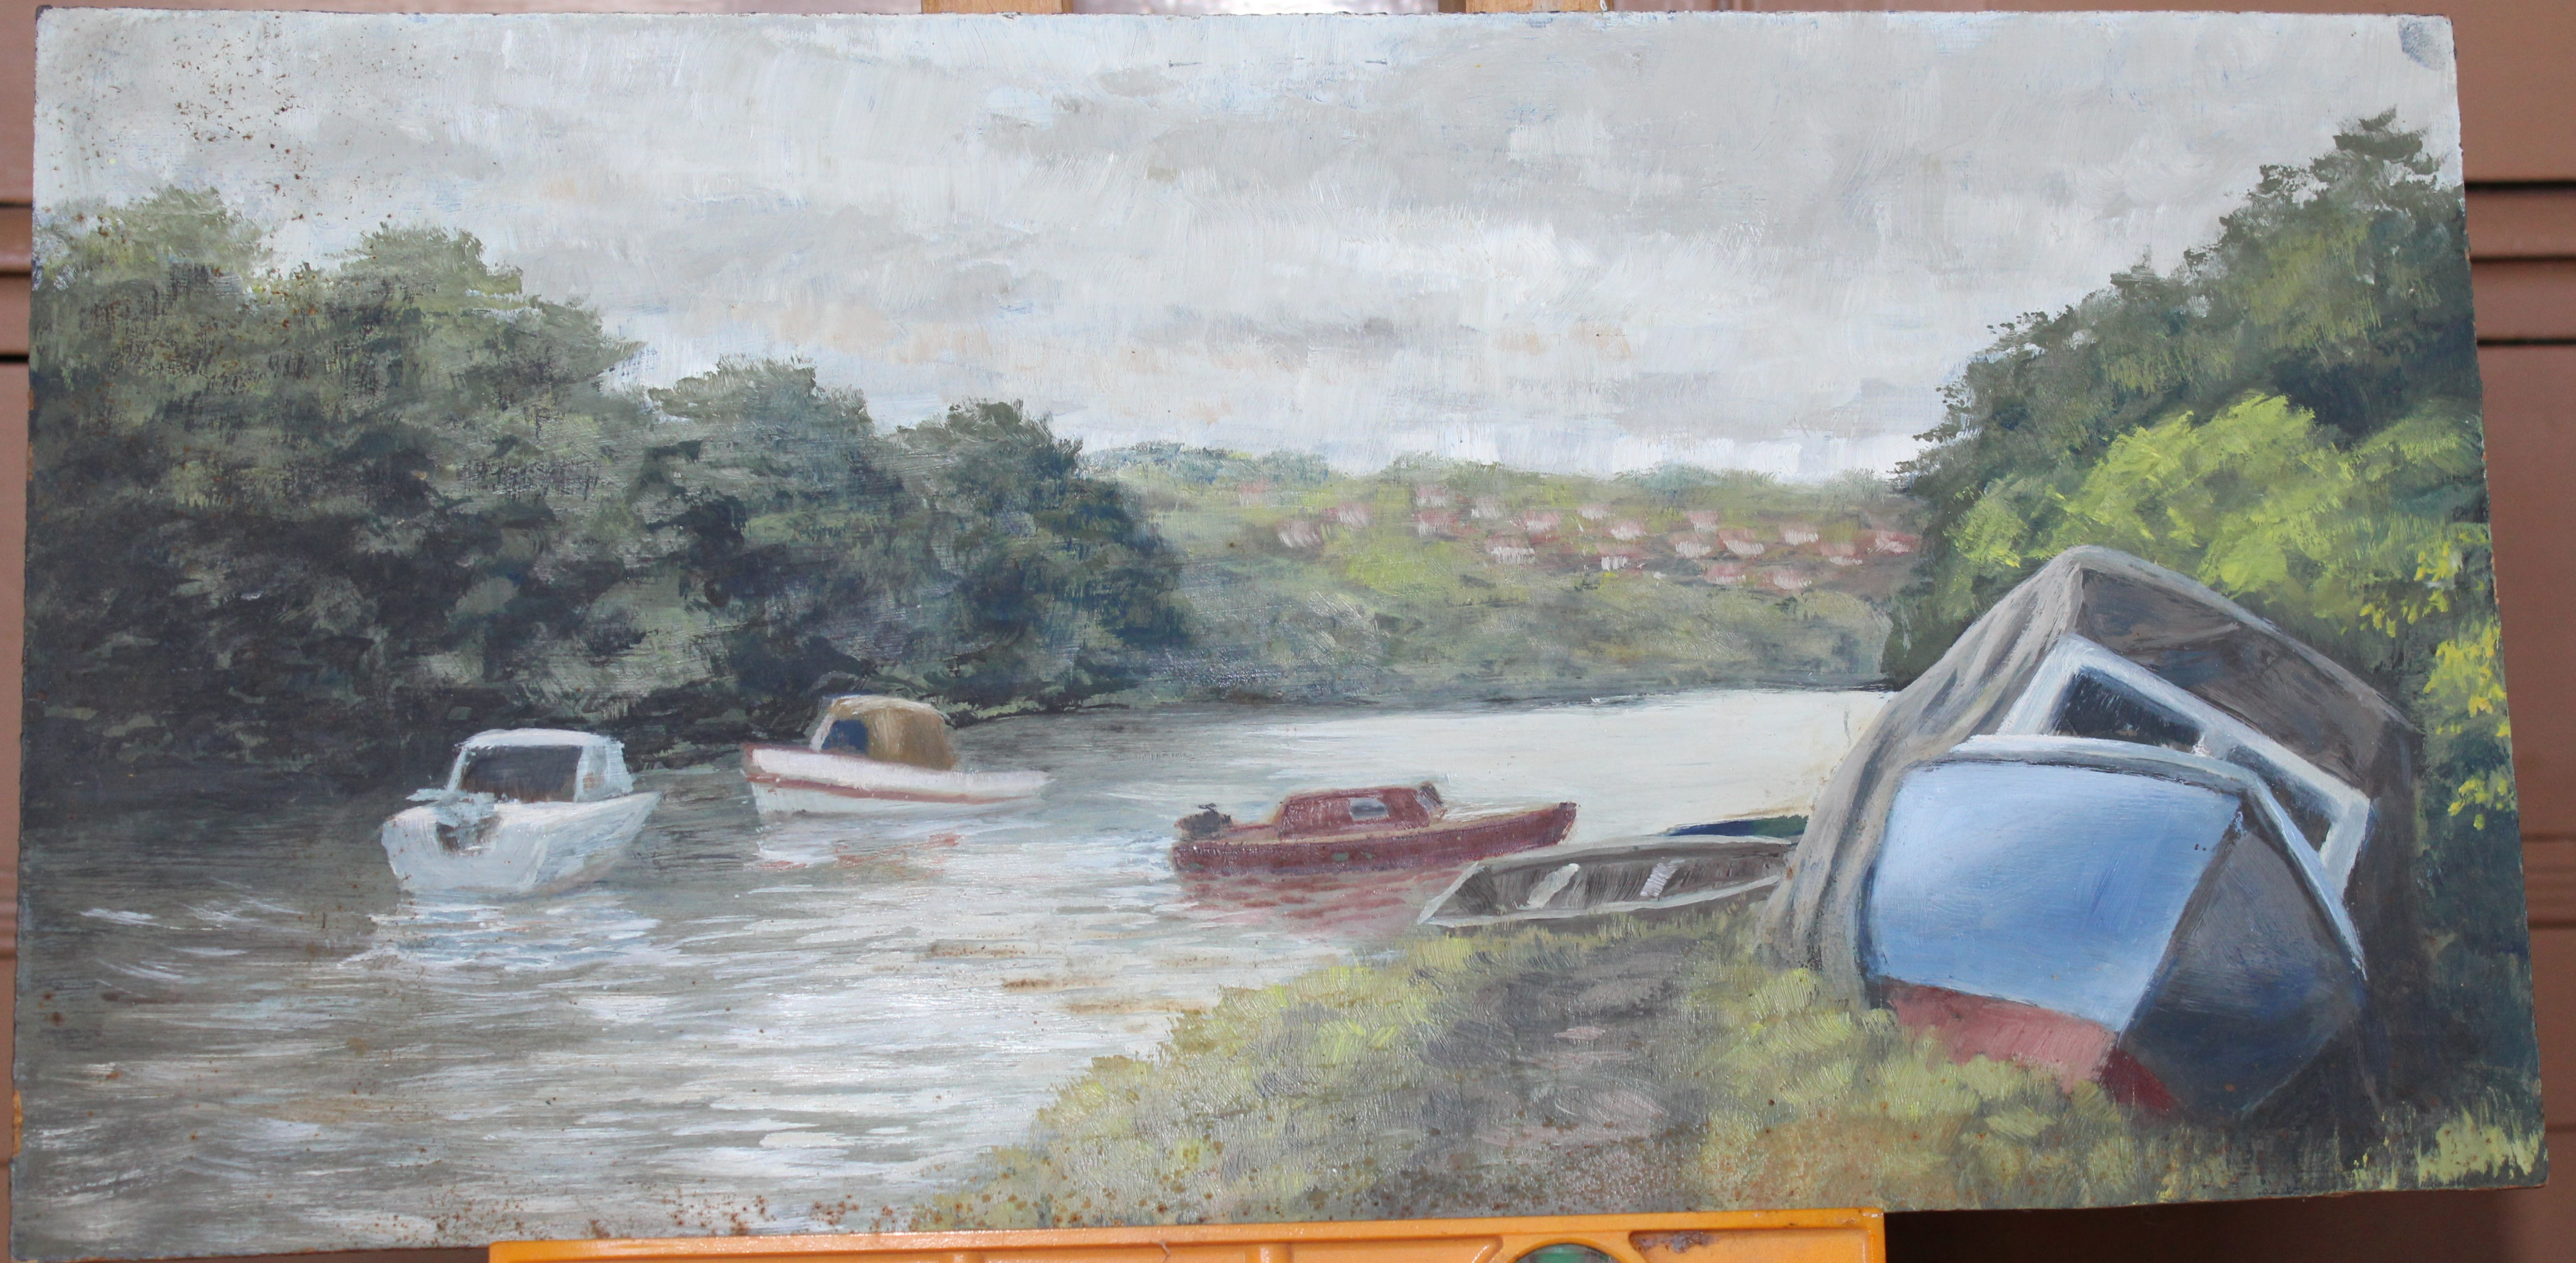 •LOPWELL Unsigned unframed oil on board, 27.5 x 45.5cm, labelled verso, sold together with three - Image 2 of 3